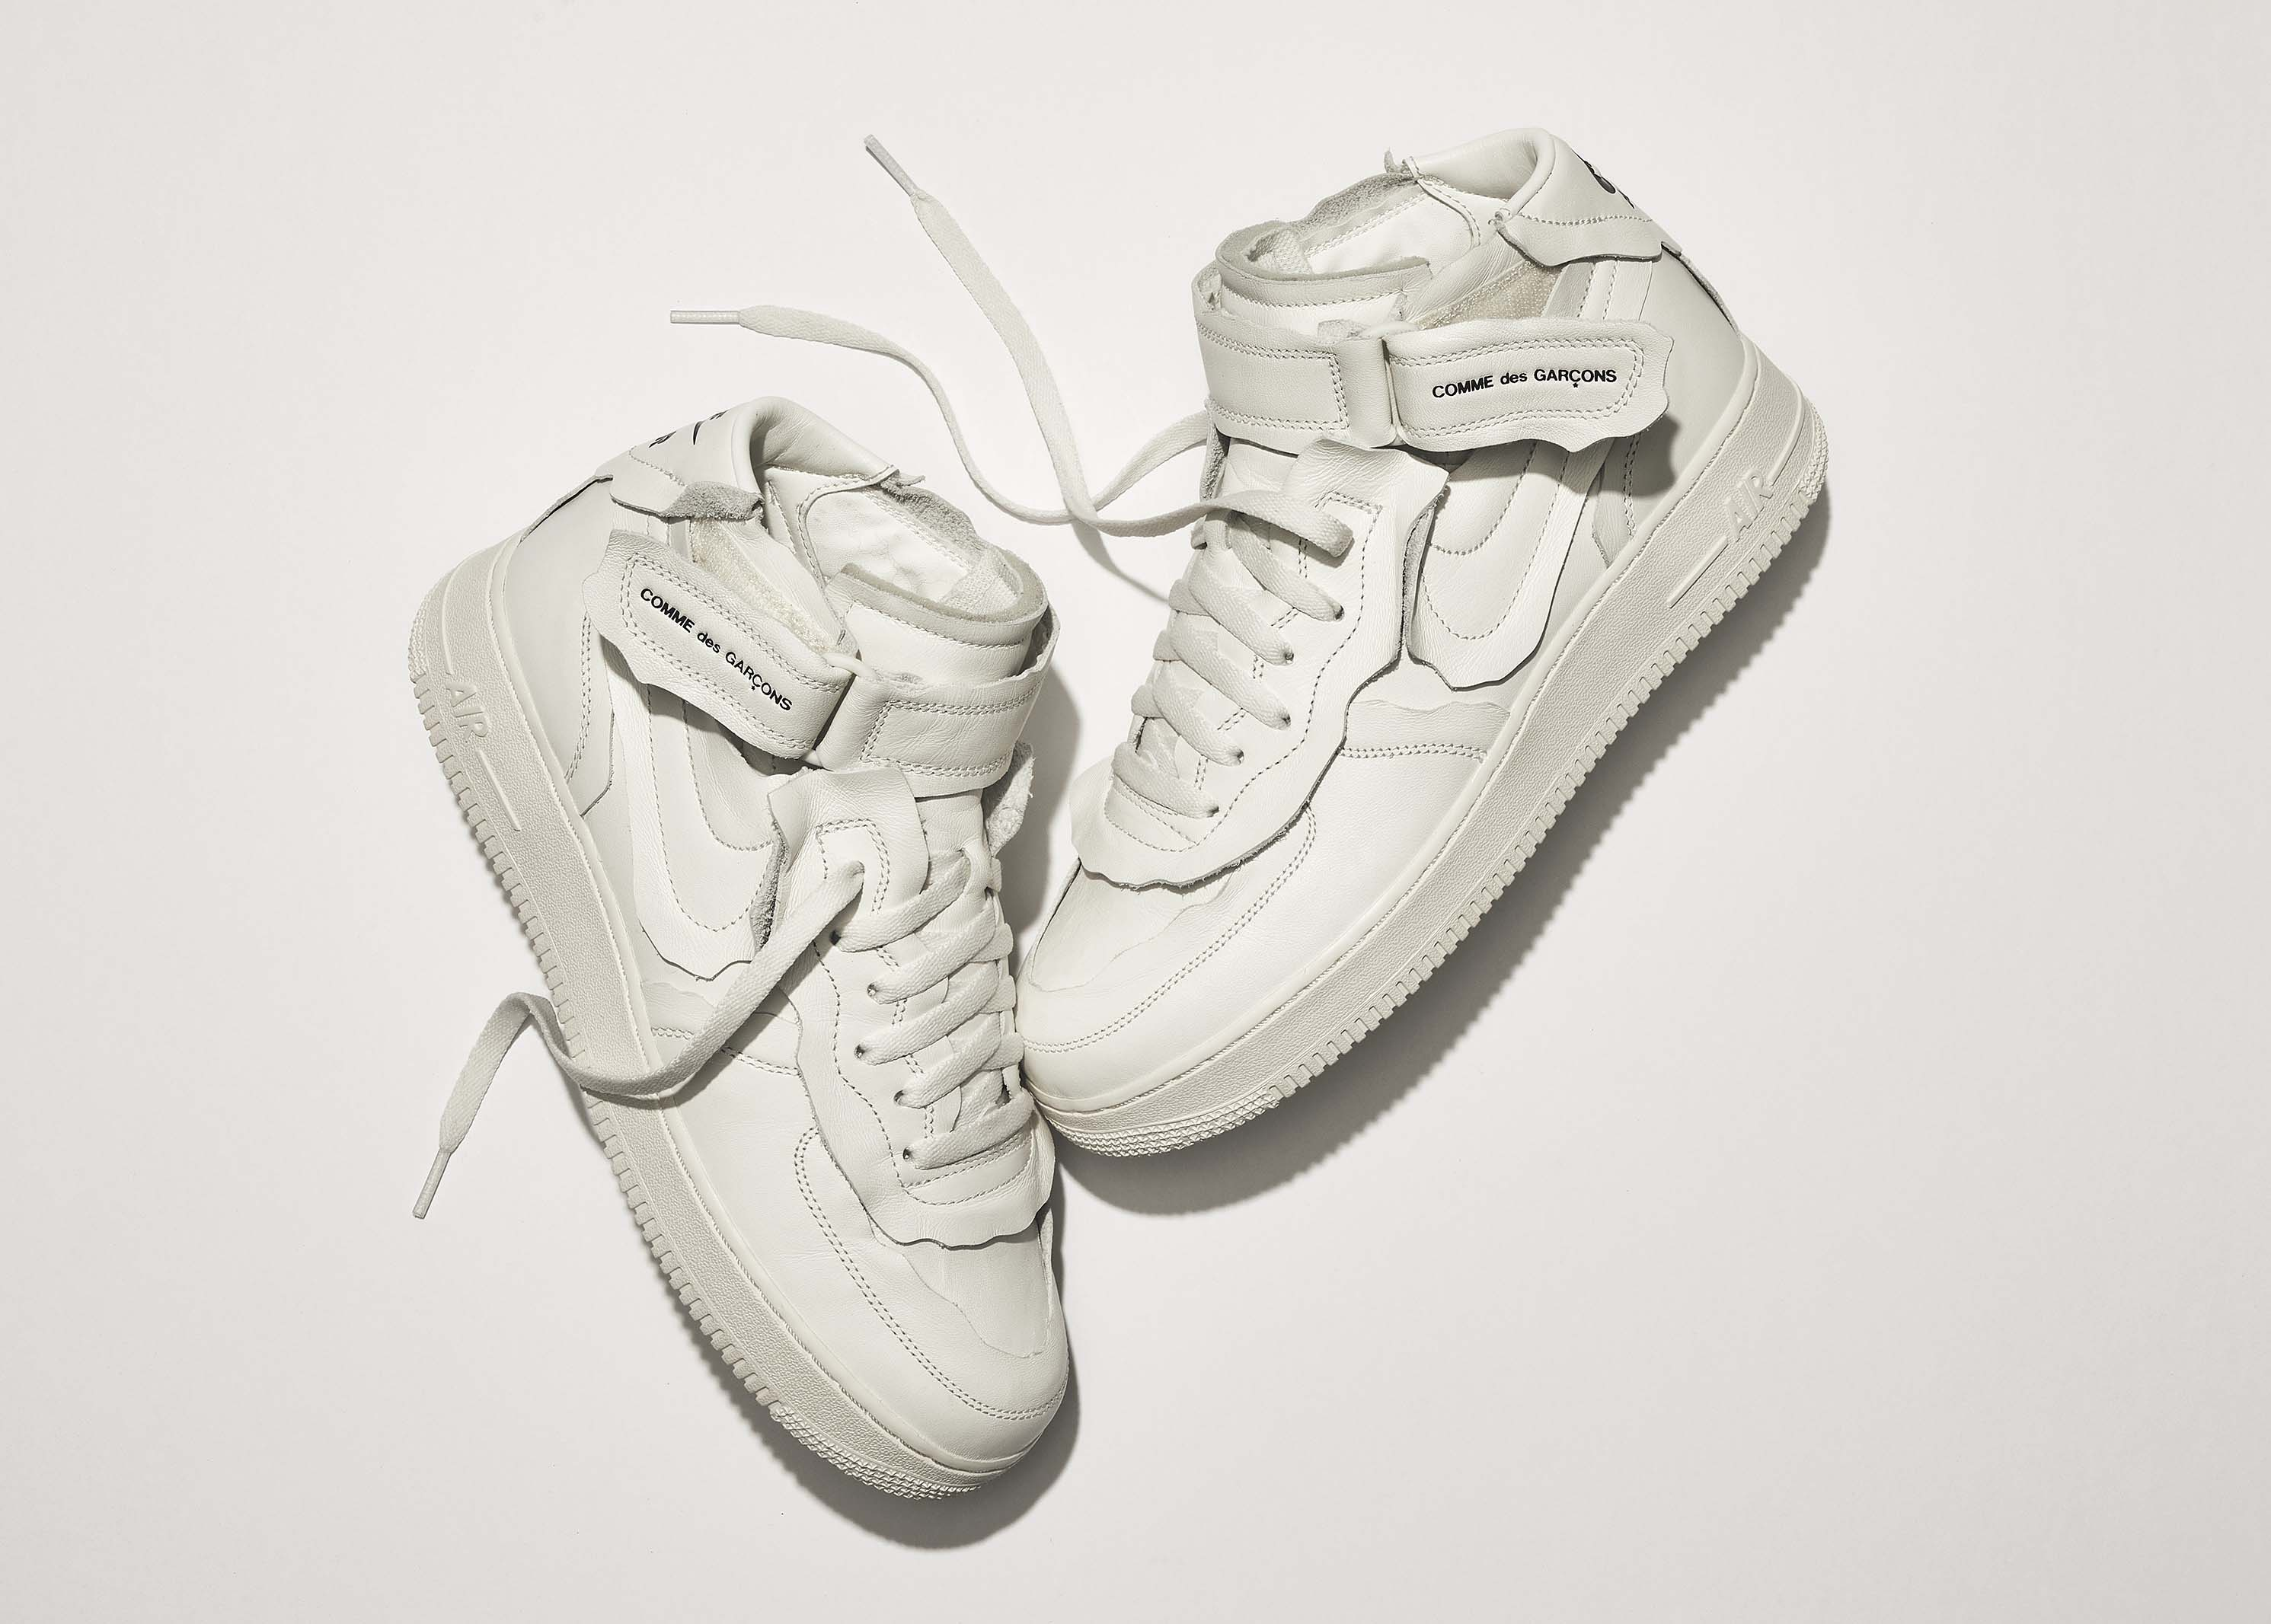 Nike x COMME des GAR??ONS Air Force 1 Mid?????? Nike ??????????????????????????????